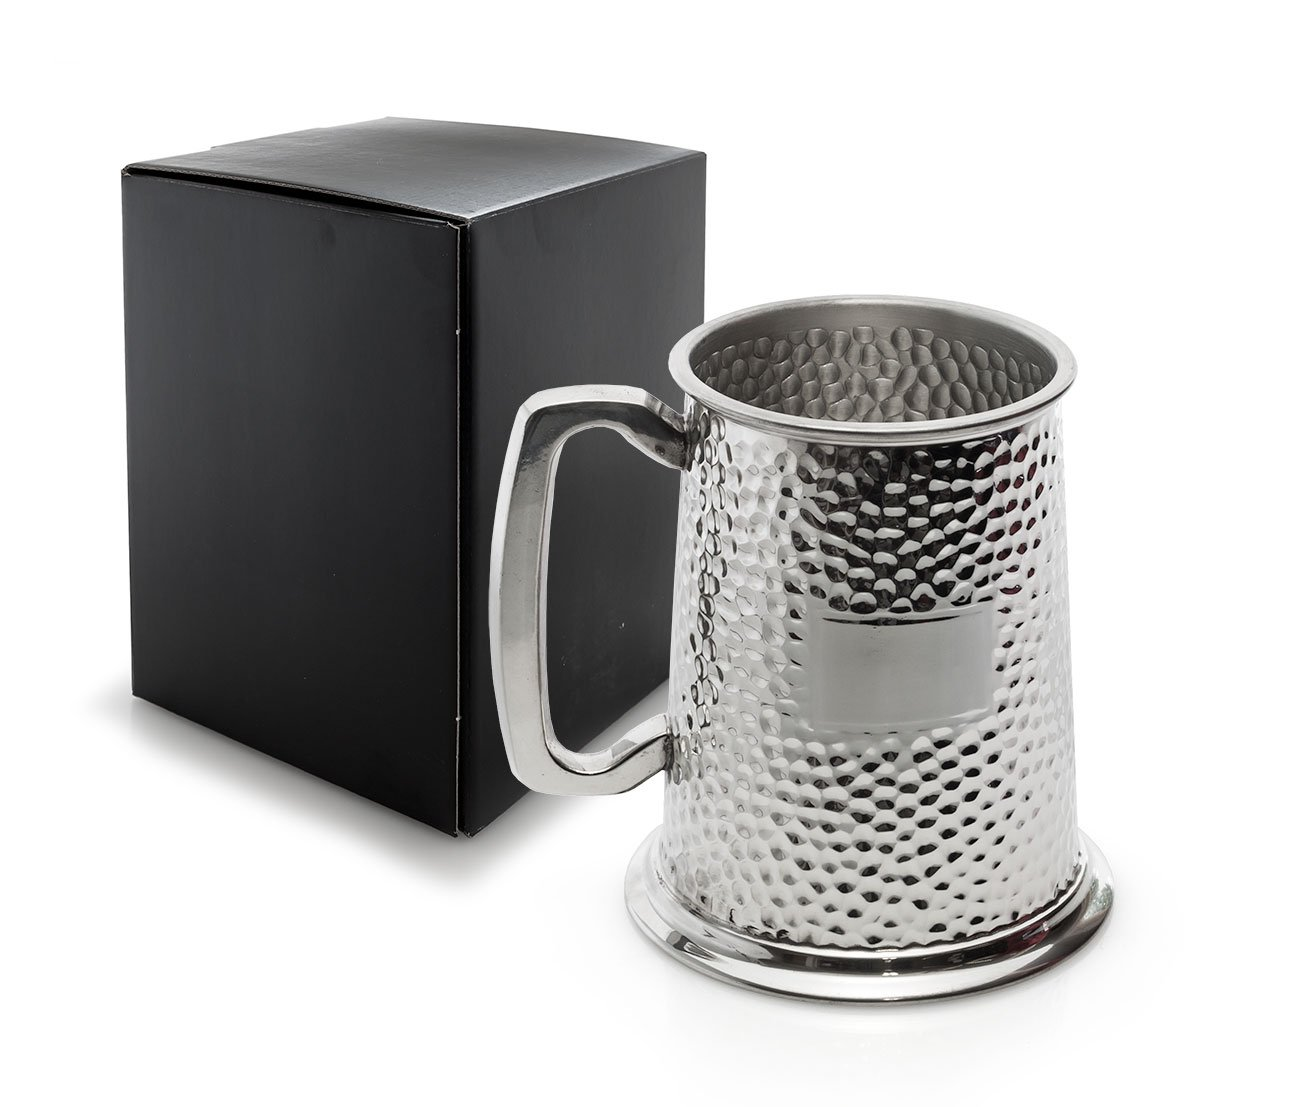 Personalised 1 Pint Pewter Hammered Finish Tankard/Mug with Engraving Plate - Engraved - Enter Your Custom Text Traditional Pewter